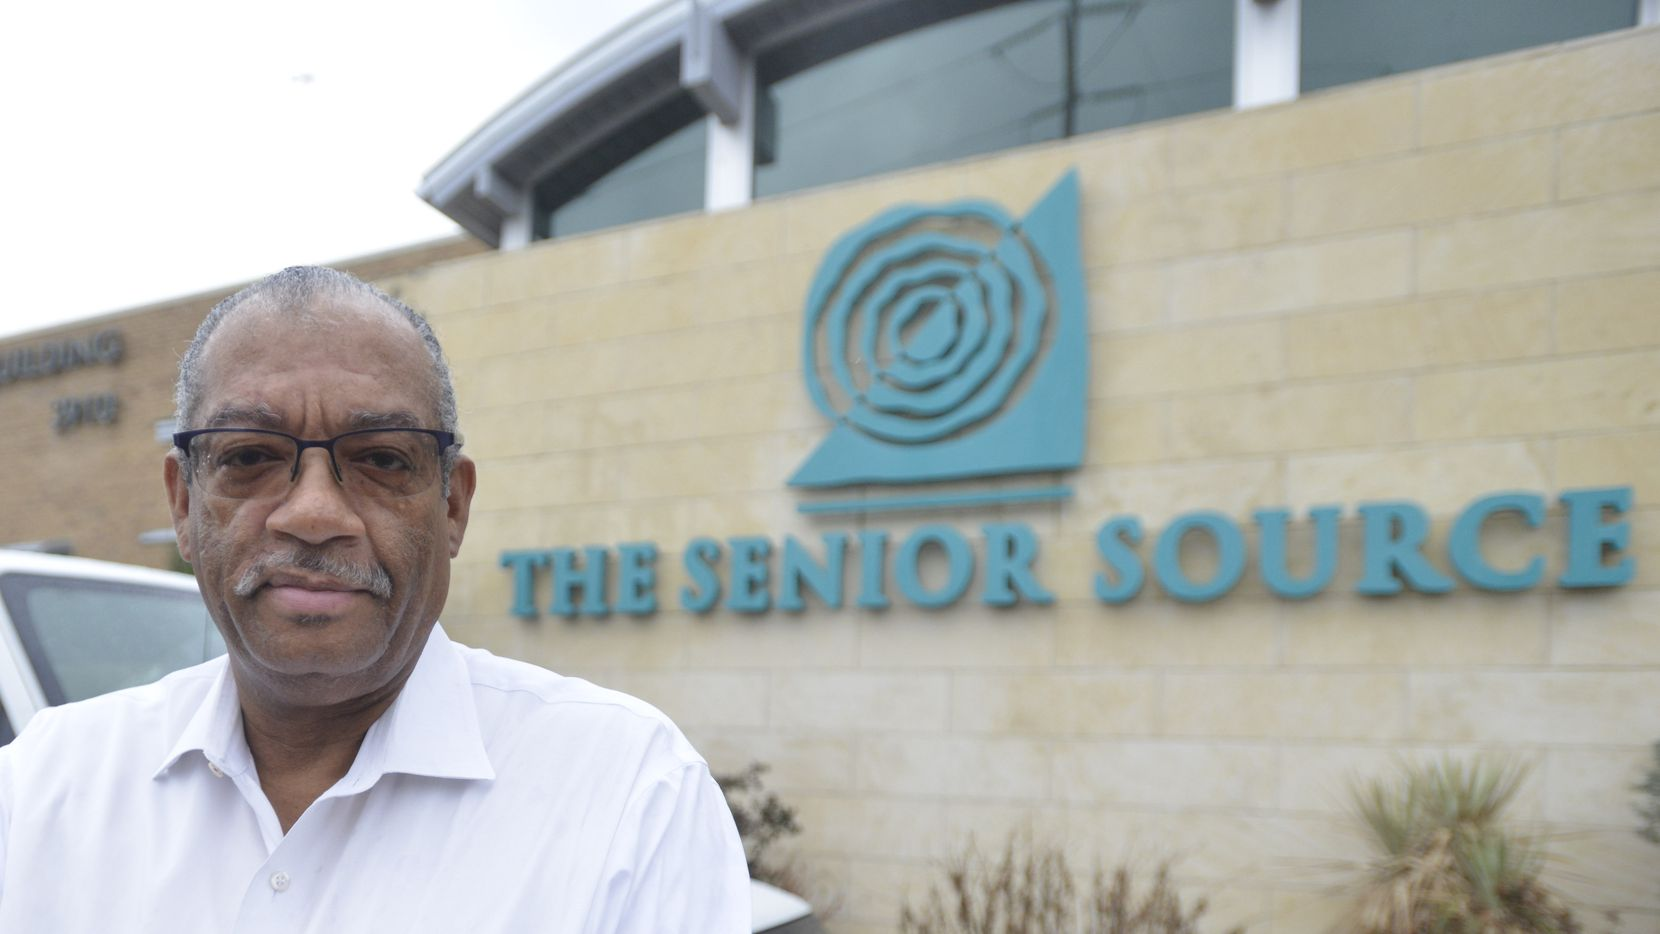 Volunteer coordinator at the Senior Source in Dallas, Michael Dade also drives the organization's van. Dade retired after caring for his dying mother.